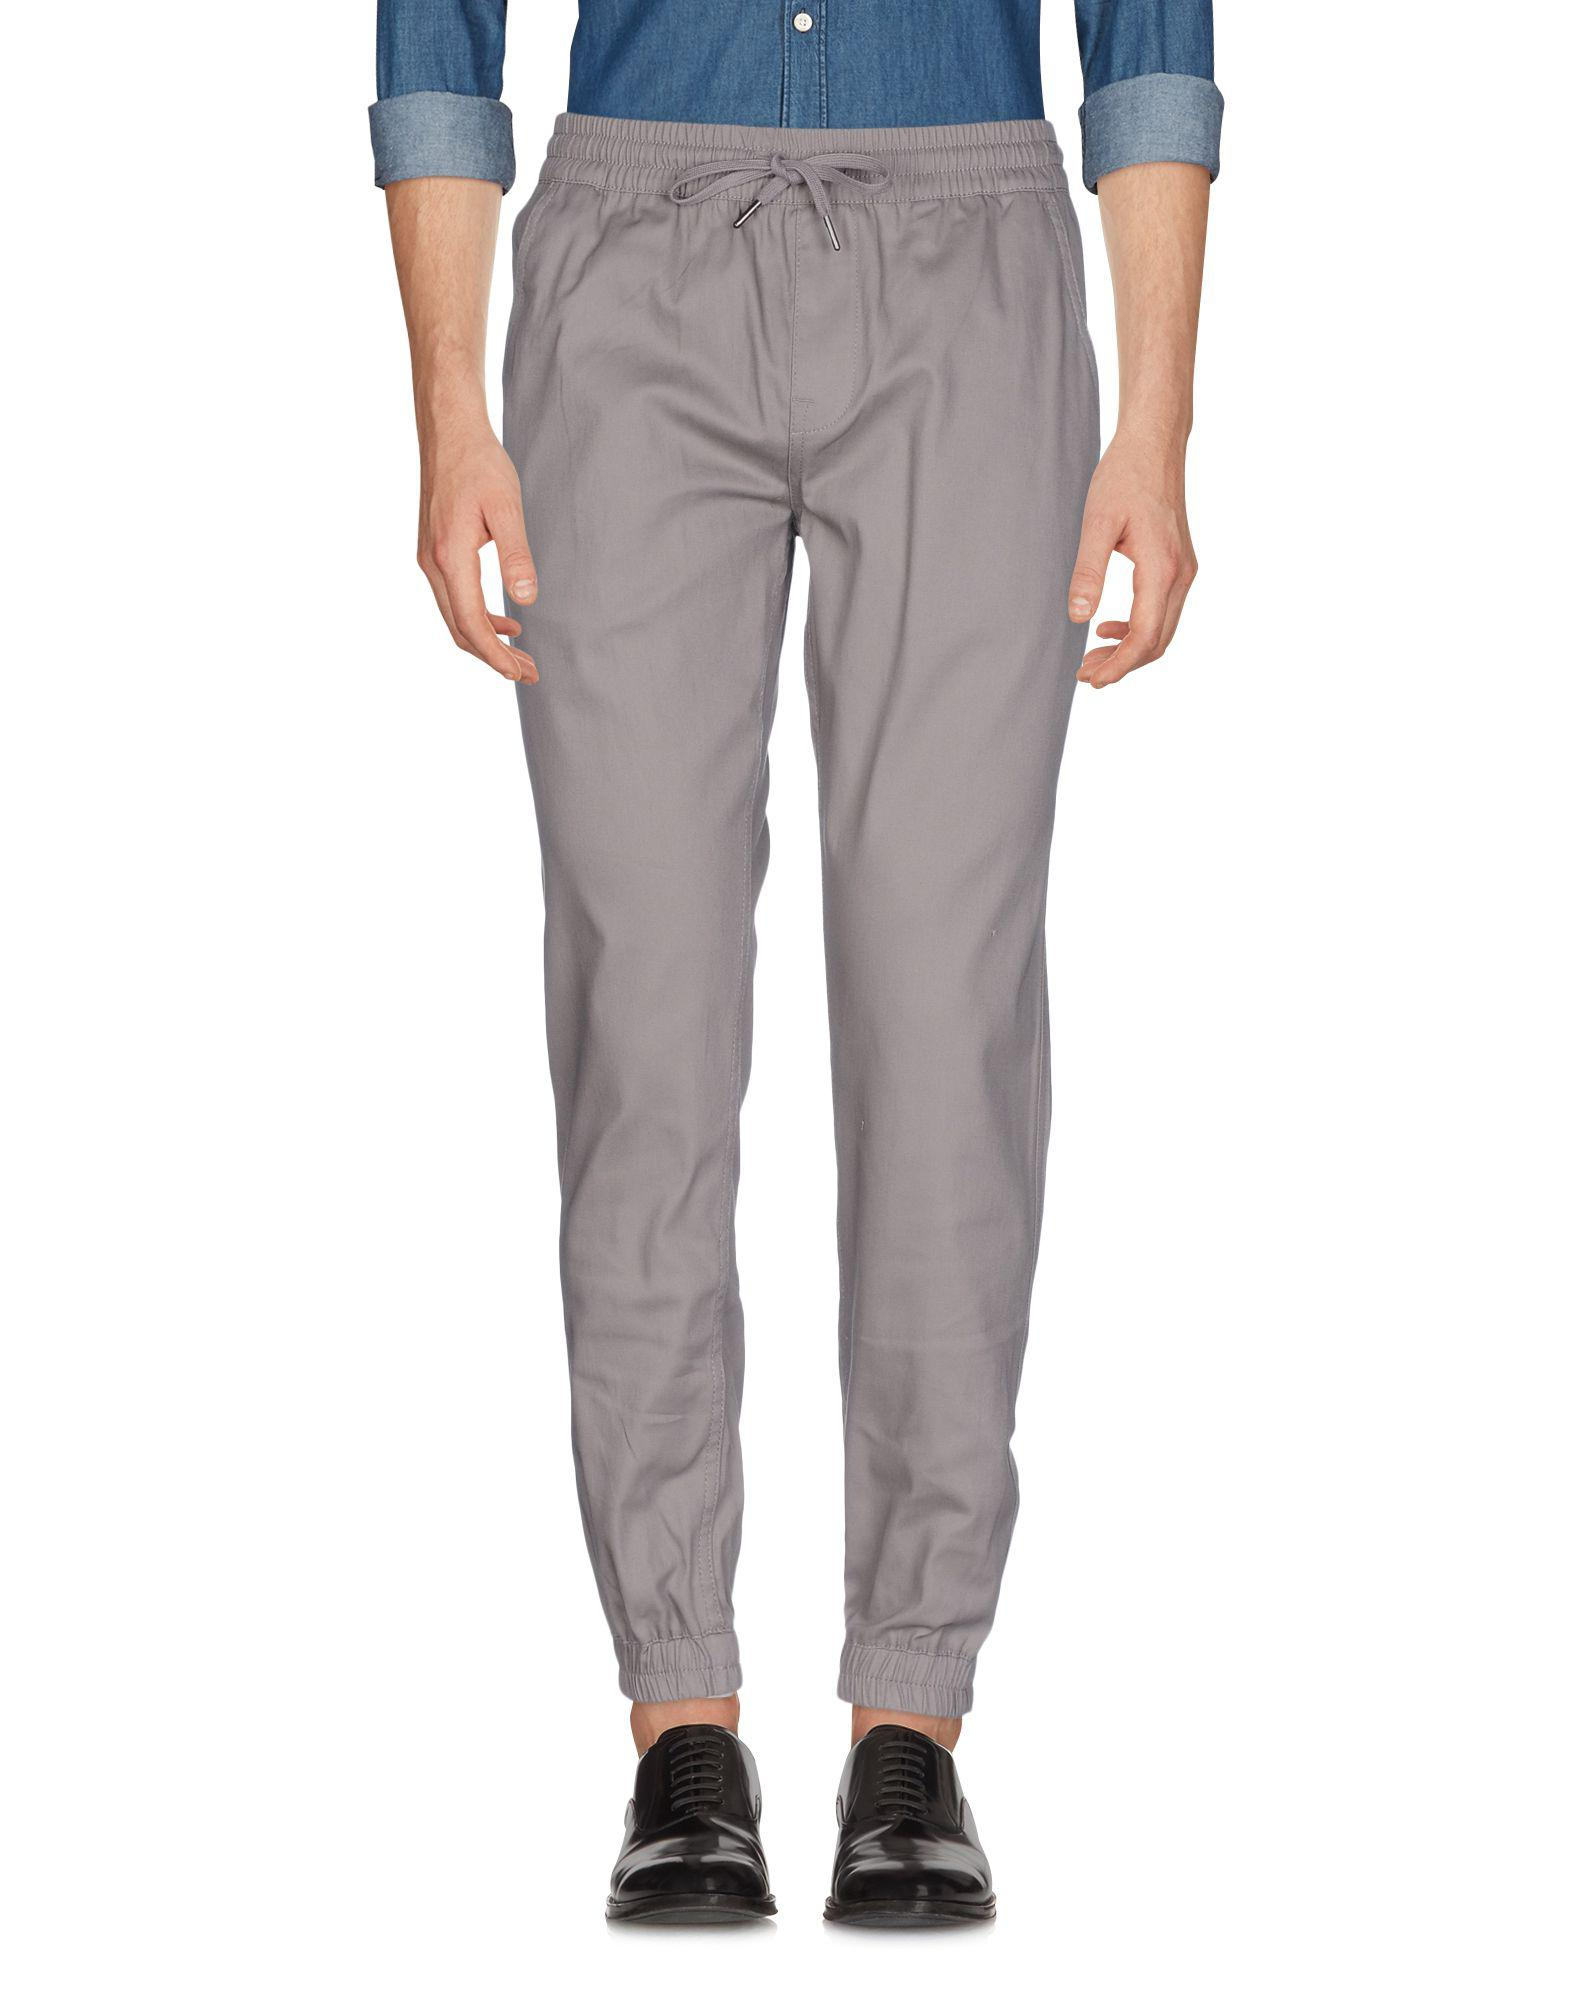 Comfortable Cheap Online Sunshine TROUSERS - Casual trousers FairPlay cOuS7eib2